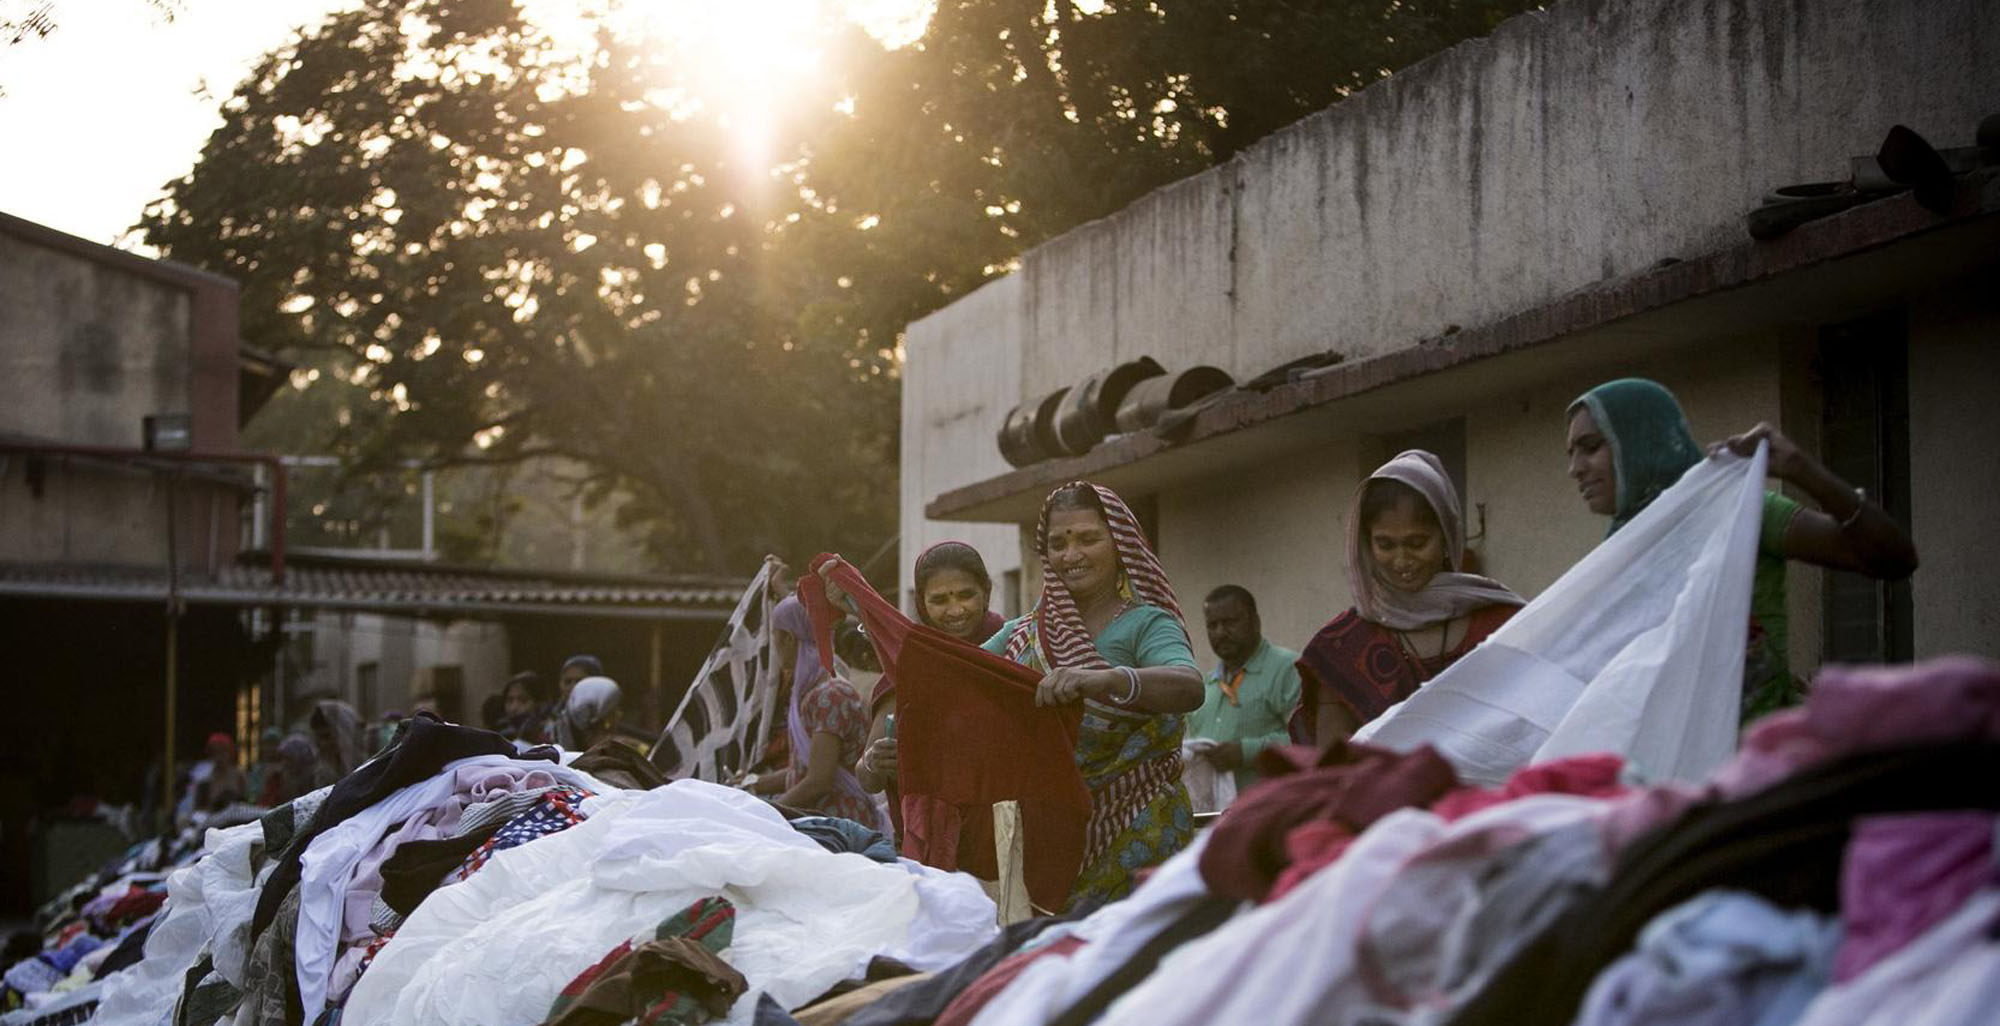 Women sort through clothes at the Canam International factory January 6, 2016 in Kutch, Gujarat. Dozens of warehouses in the Special Economic zone in Gujarat handle the sorting and recycling of tons and tons of donated clothes from the west. Allison Joyce for the Wall Street Journal